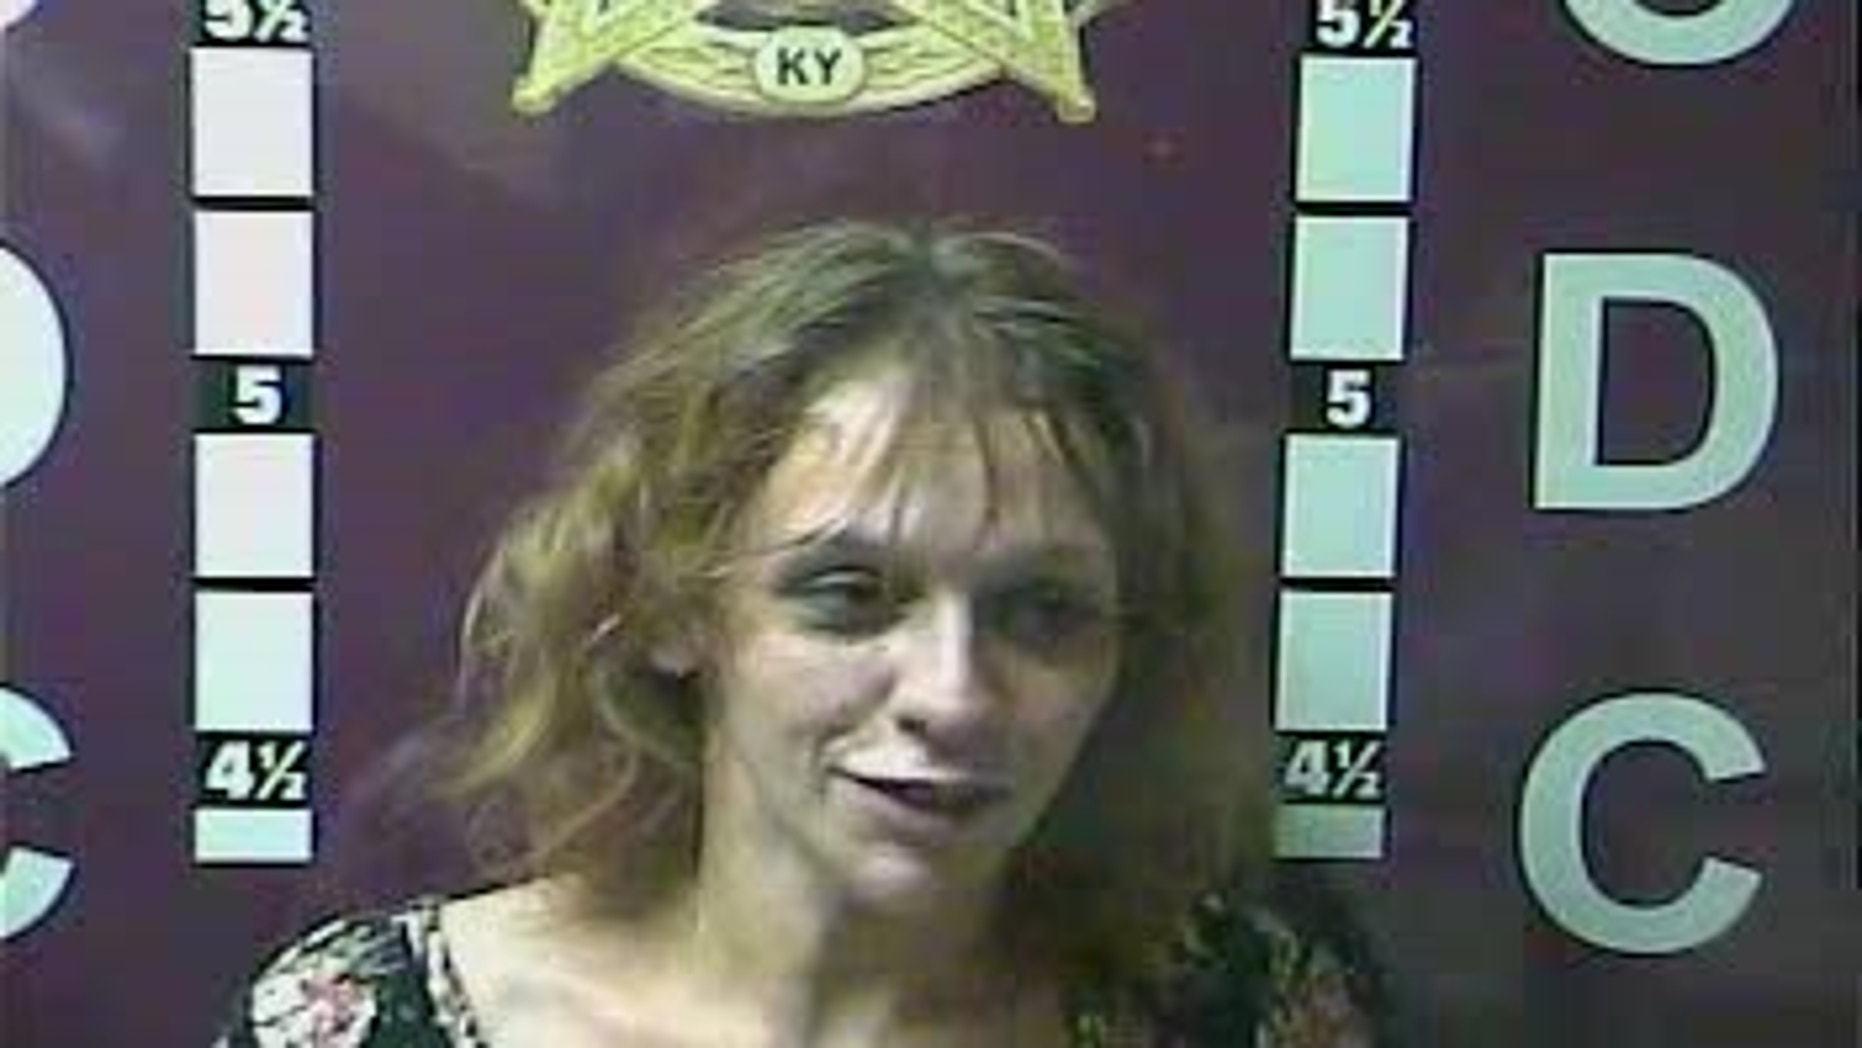 Amanda Peters, 26, allegedly defecated on a sheriff's deputy during her arrest early Saturday.